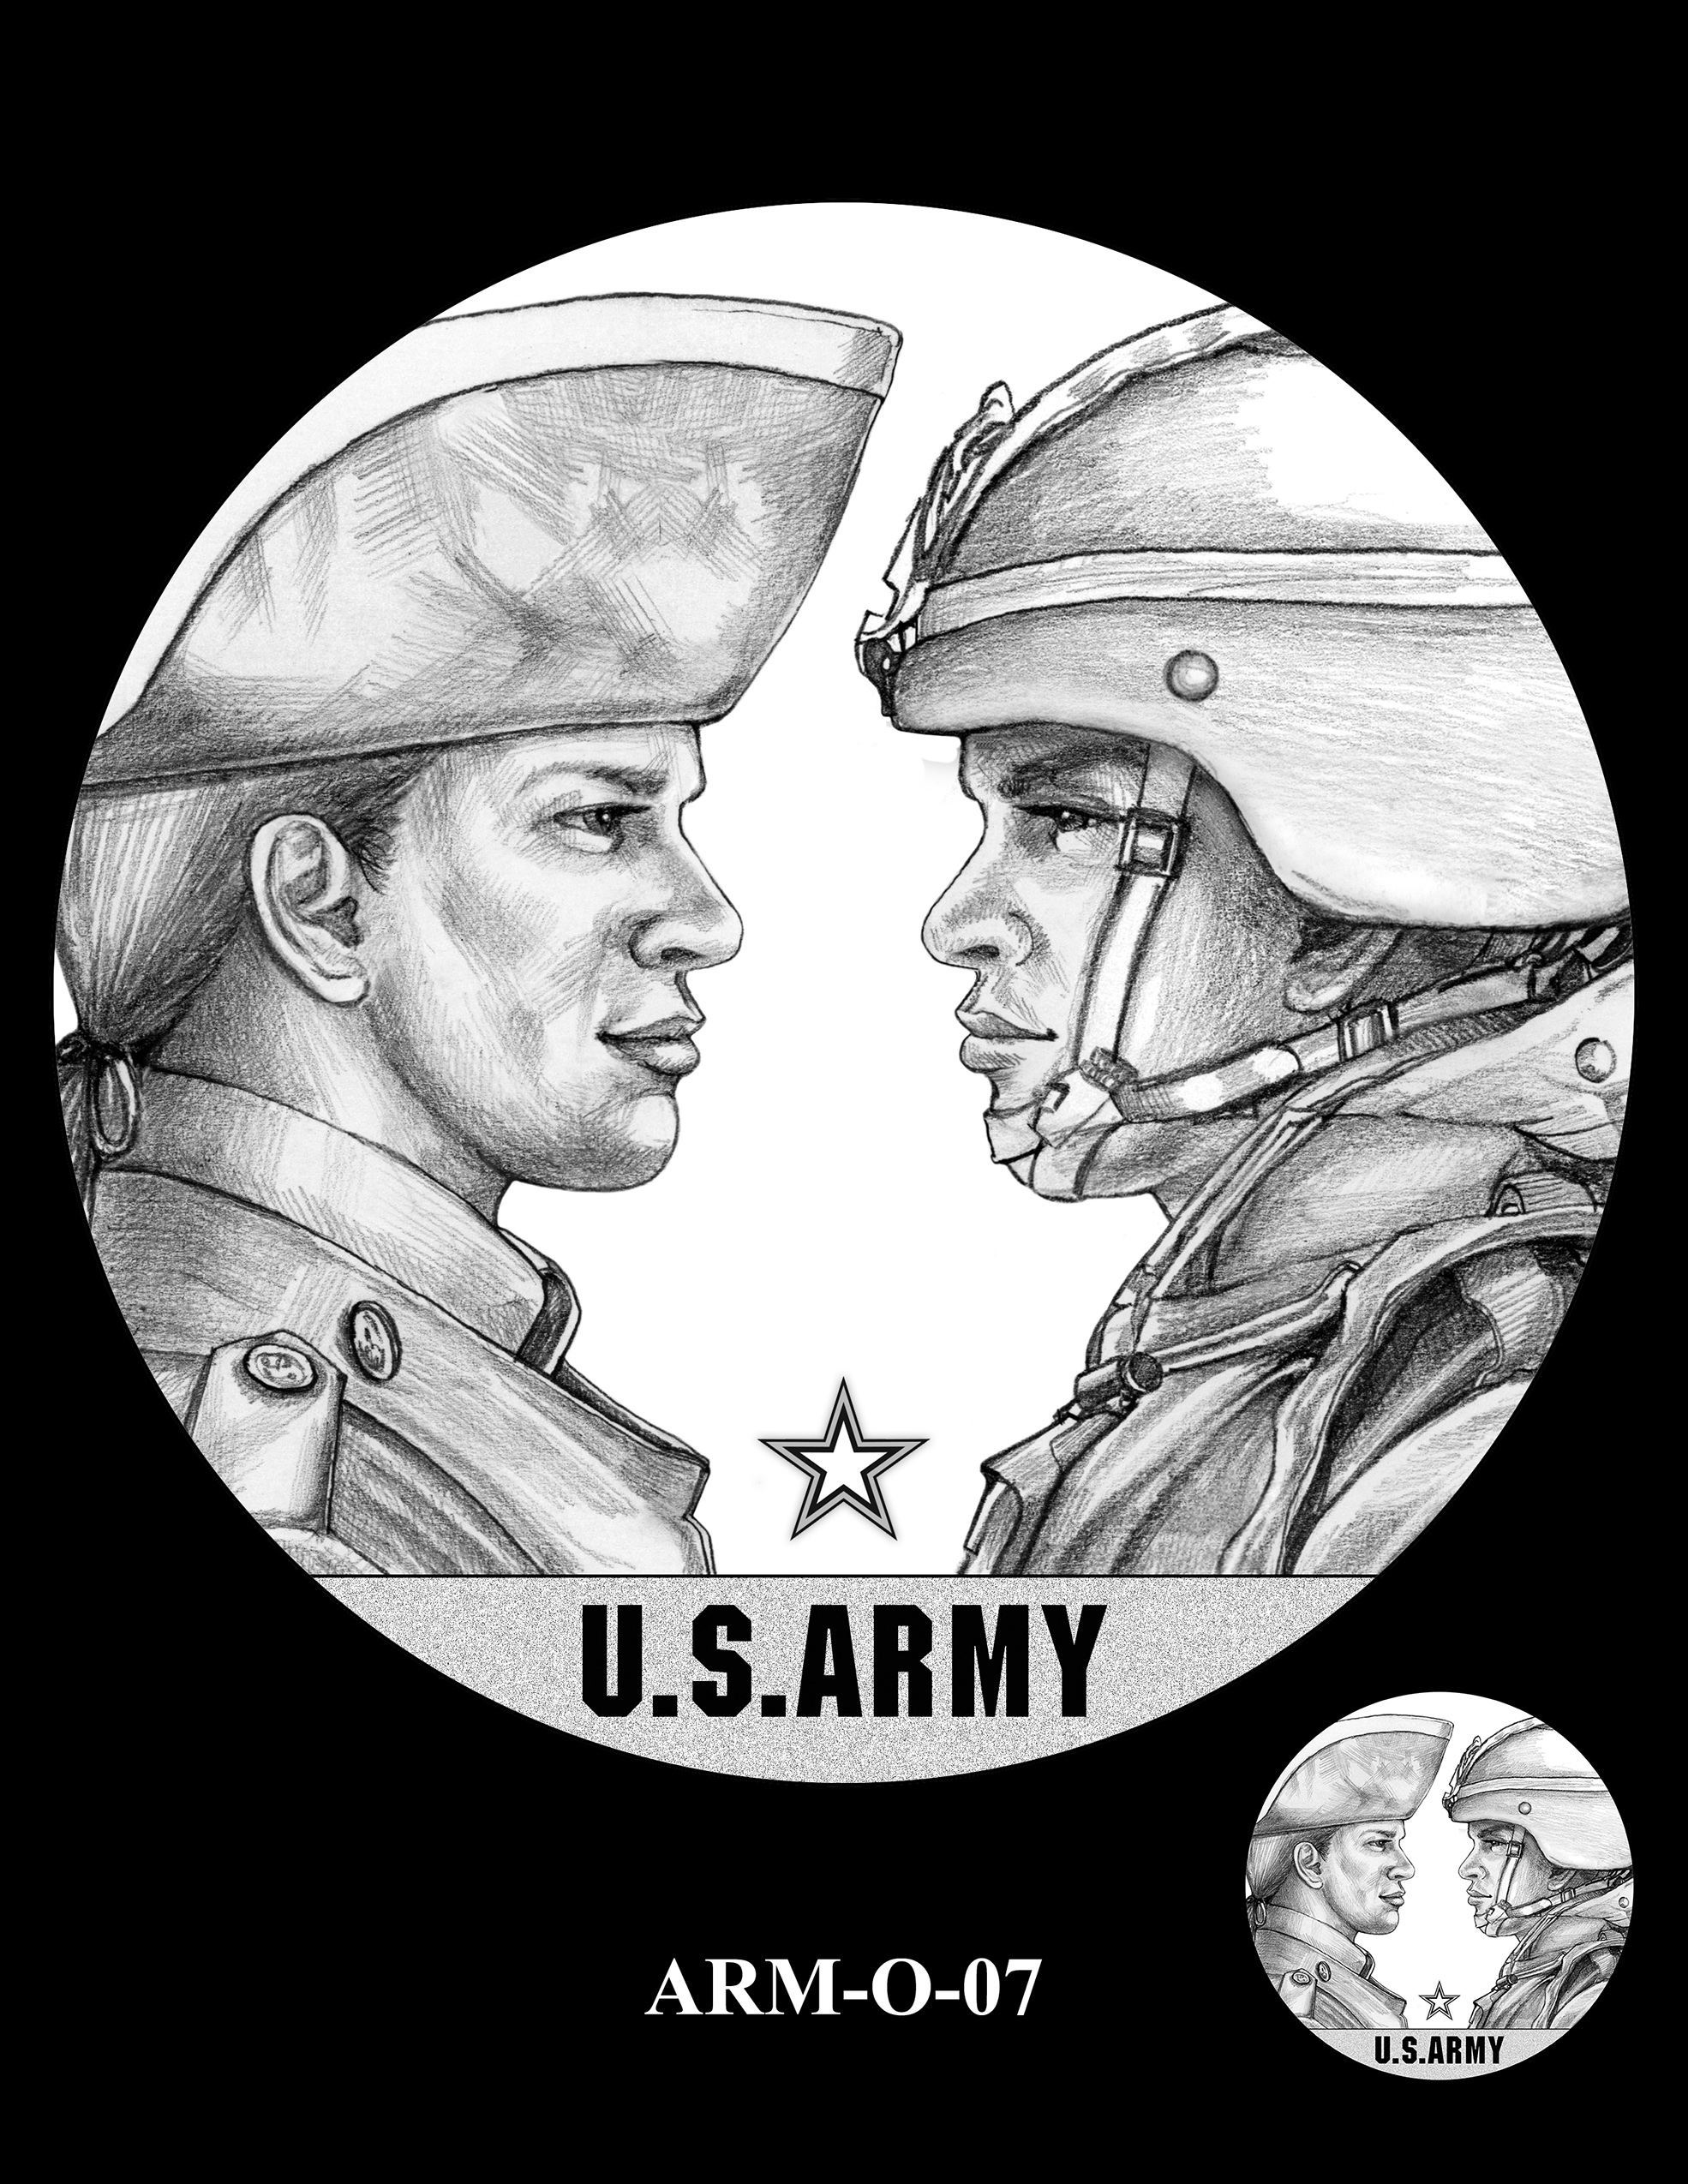 ARM-O-07 -- United States Army Silver Medal